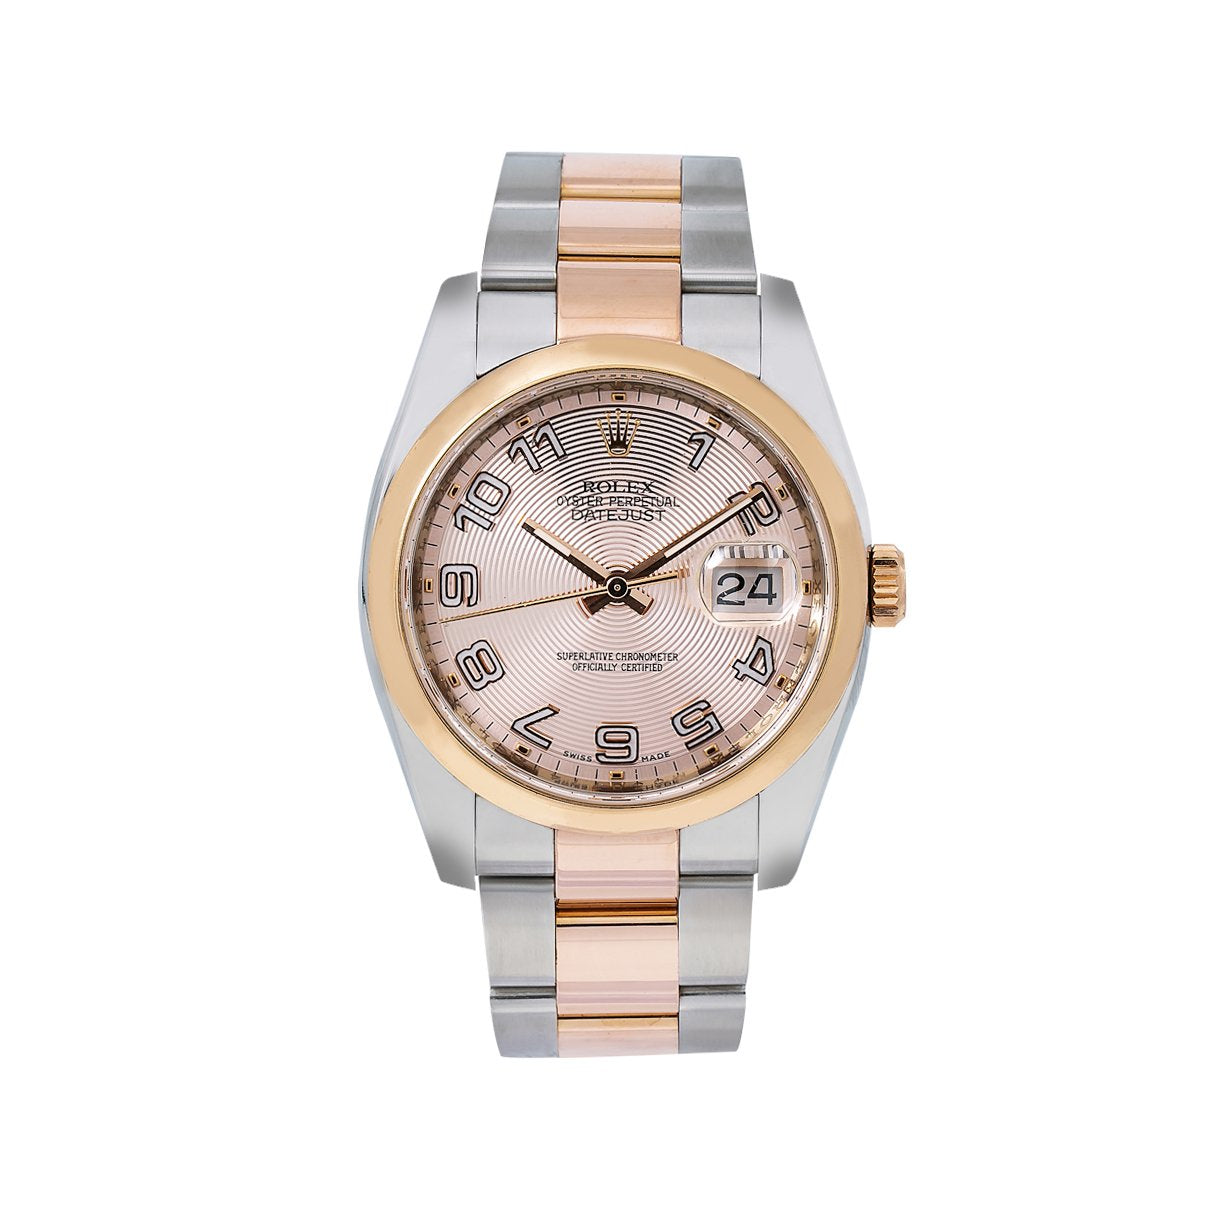 Rolex Datejust 116201 36MM Pink Dial With Two Tone Oyster Bracelet